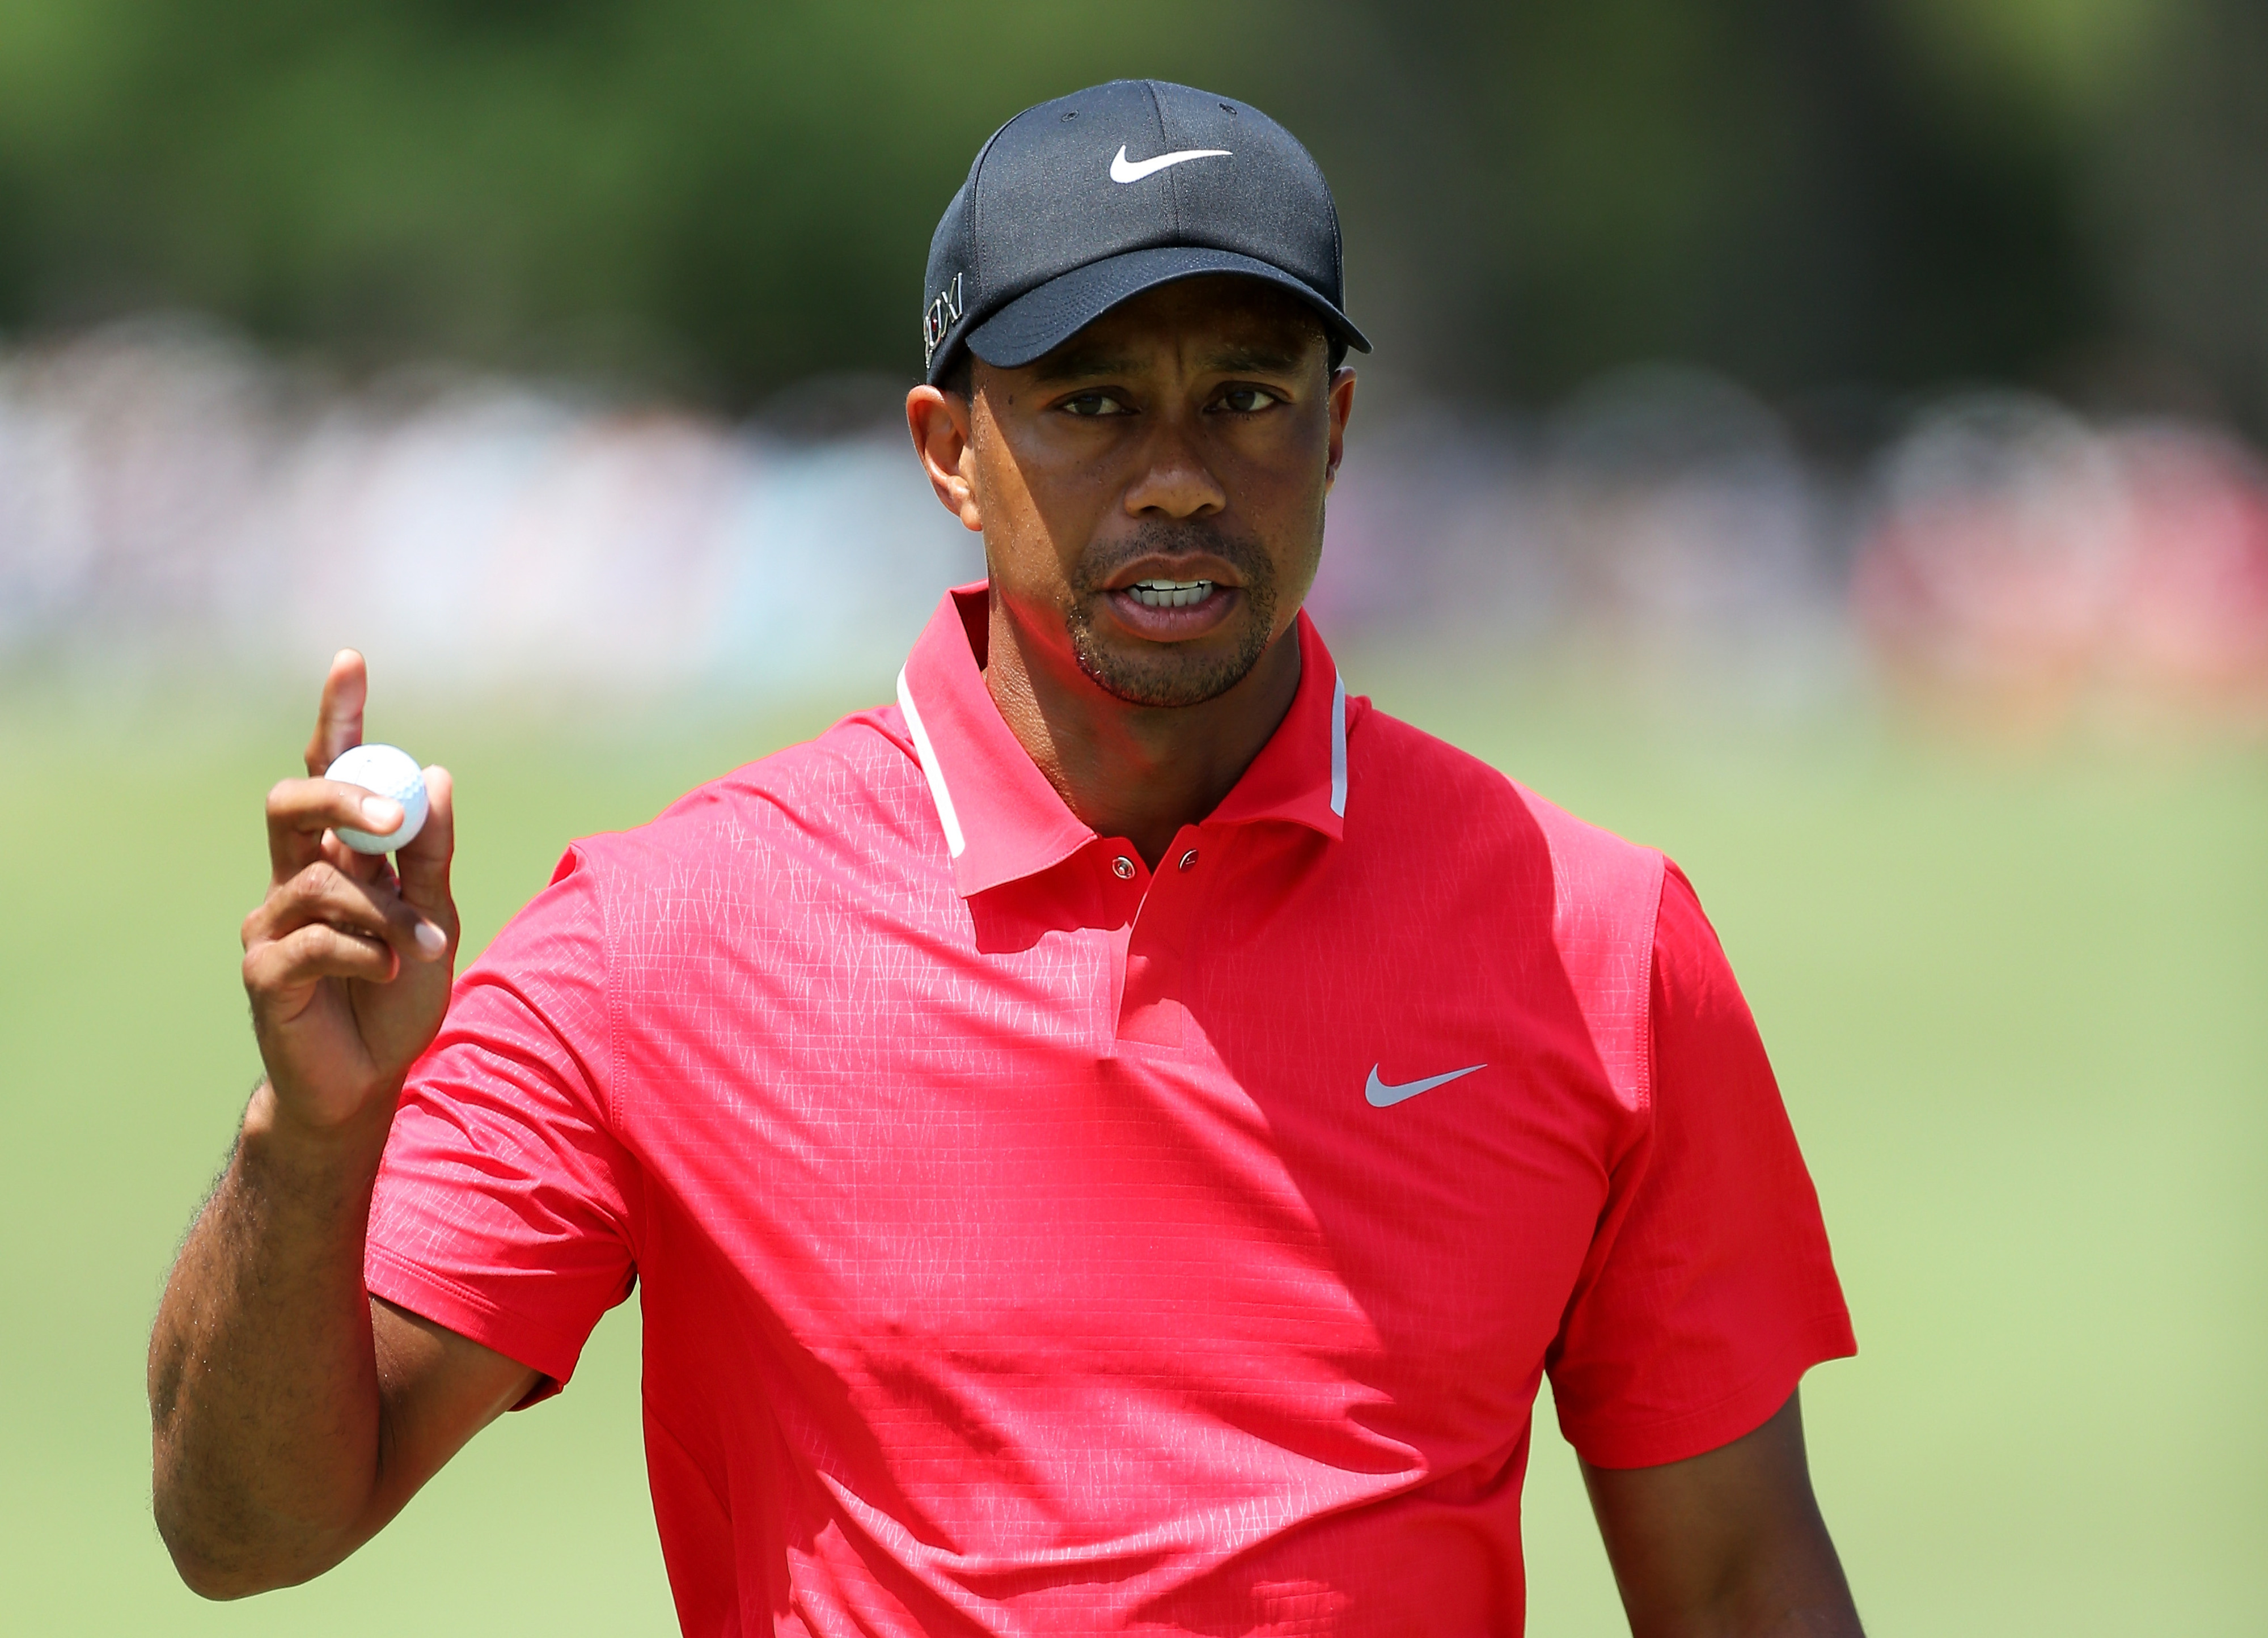 Players Championship 2013 results: Tiger Woods wins after eventful final holes